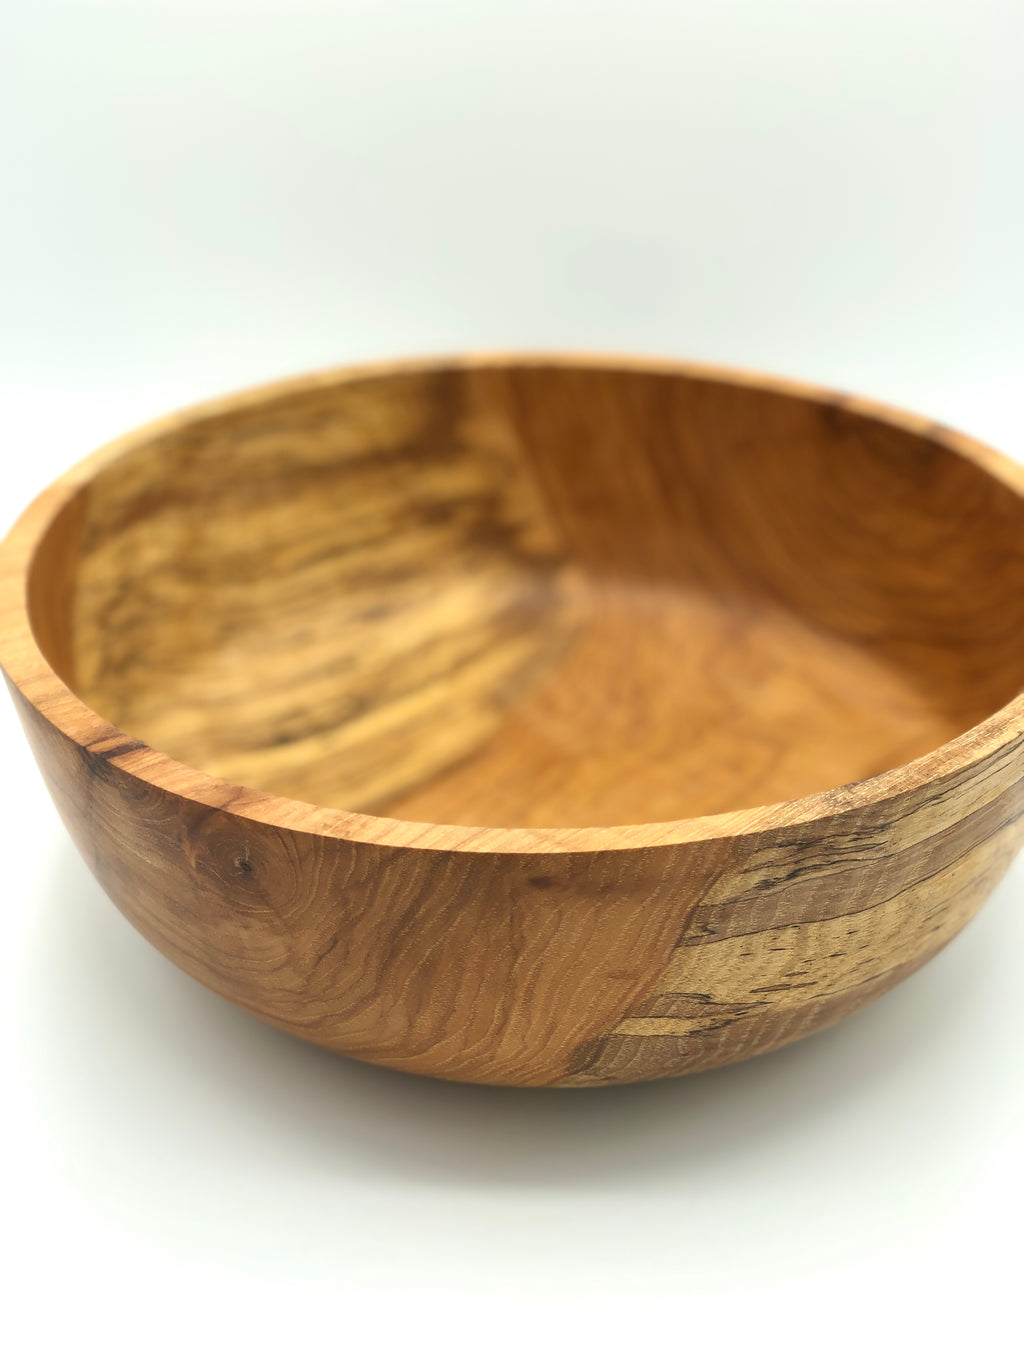 Don Talcott #171, Spalted Pecan Bowl, 10.5""